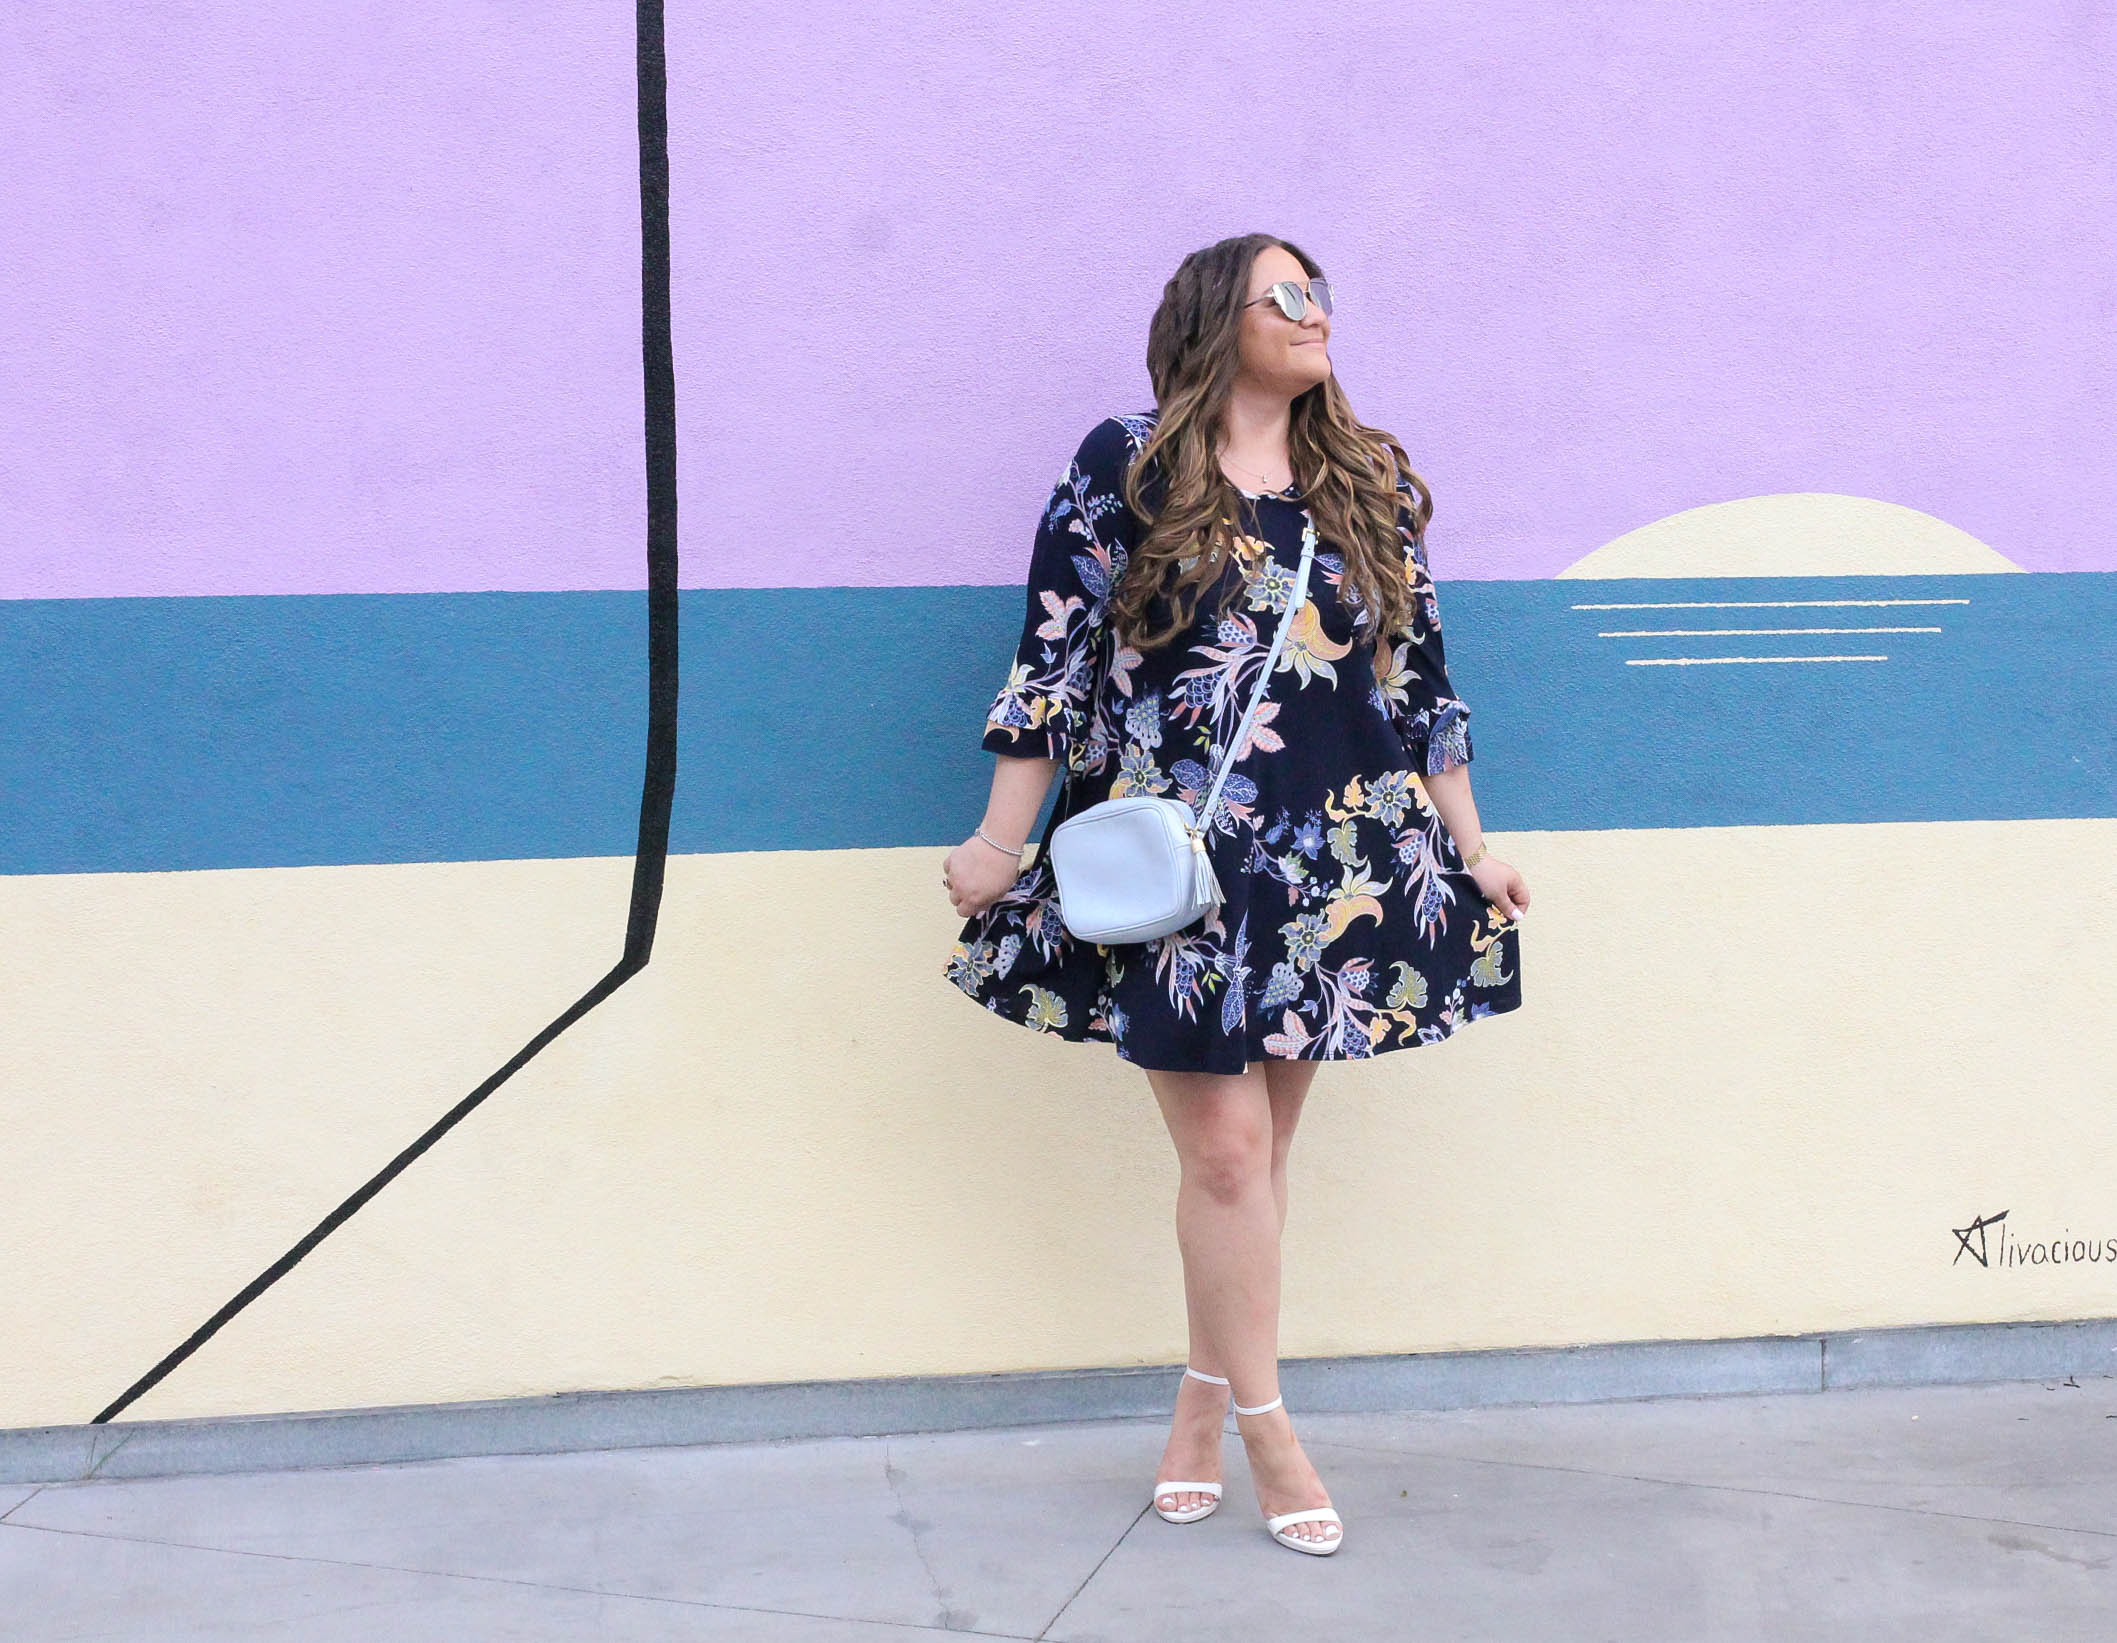 missyonmadison, missyonmadison instagram, missyonmadison blog, melissa tierney, fashion blog, fashion blogger, style blog, style blogger, floral dress, navy bell sleeve floral dress, bell sleeve dress, floral bell sleeve dress, bell sleeve navy dress, bell sleeve dress, white heels, white ankle strap heels, gigi new york bag, gigi new york crossbody bag, crossbody bag, raybans, la wall crawl, la wall art, palm tree wall, purple wall, bloglovin, la blogger,